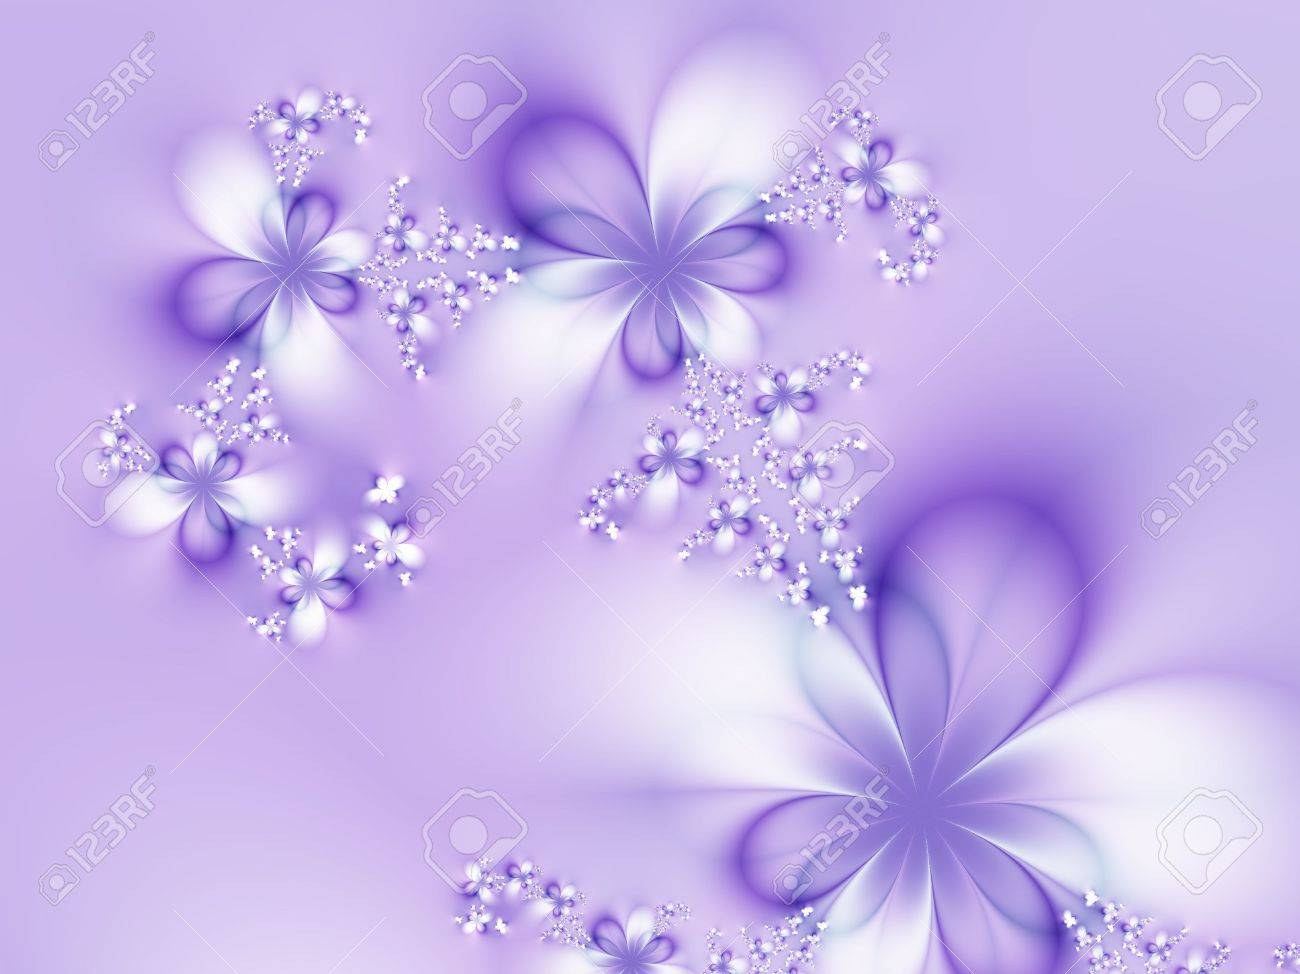 Beautiful Flowers On A Violet Background Stock Photo Picture And 1300x974